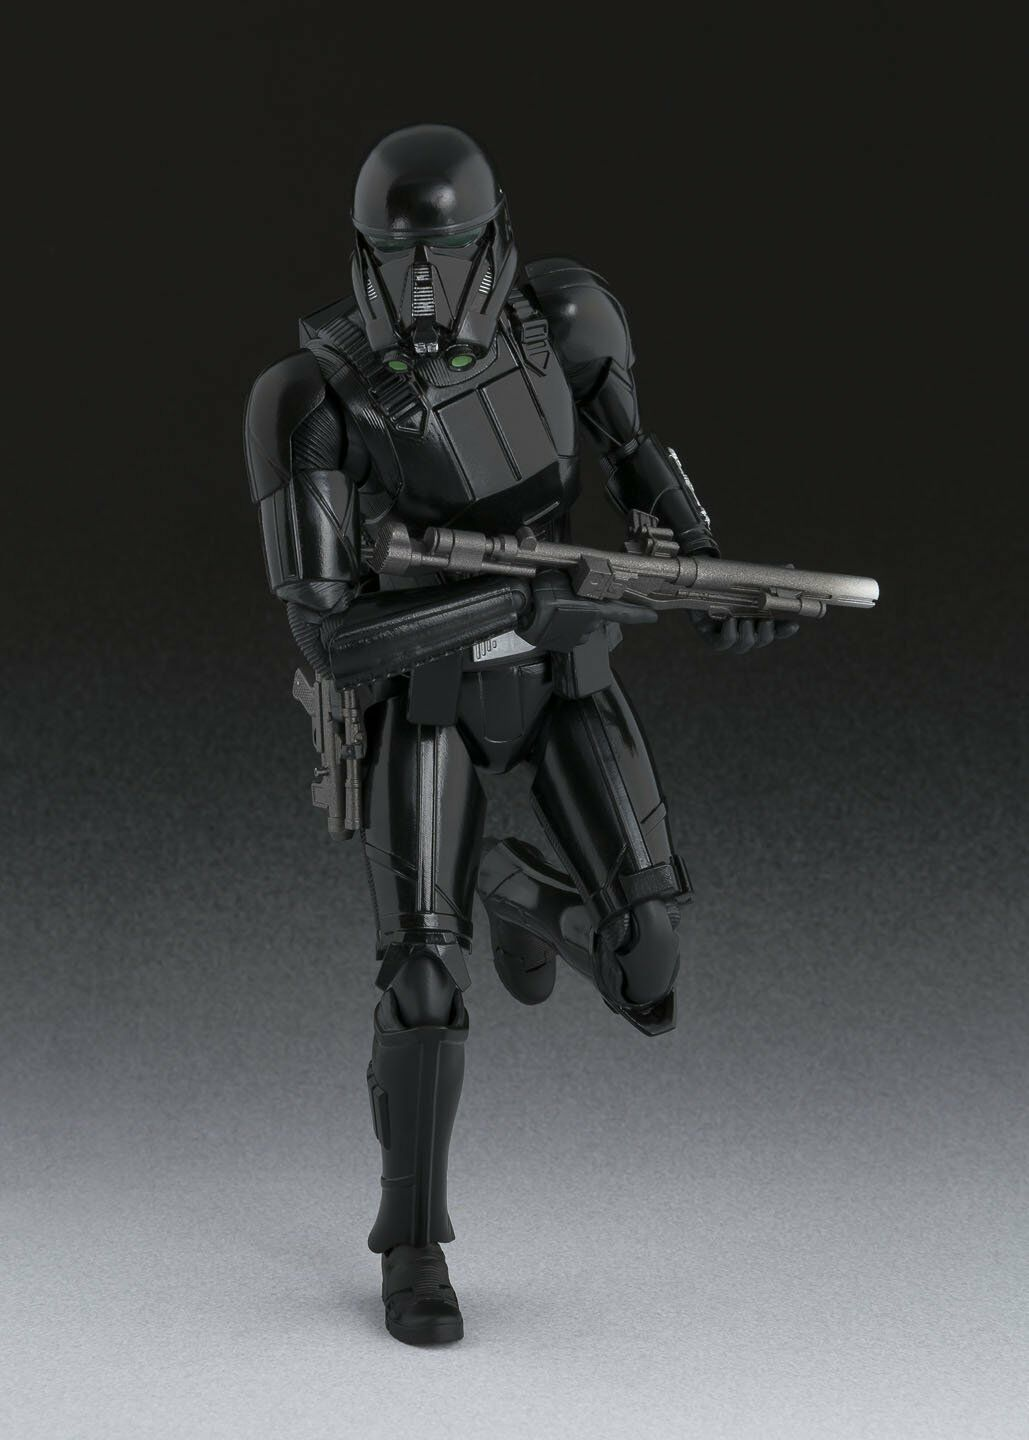 Bandai S.H.Figuarts STAR WARS ROGUE ONE DEATH TROOPER Action Figure